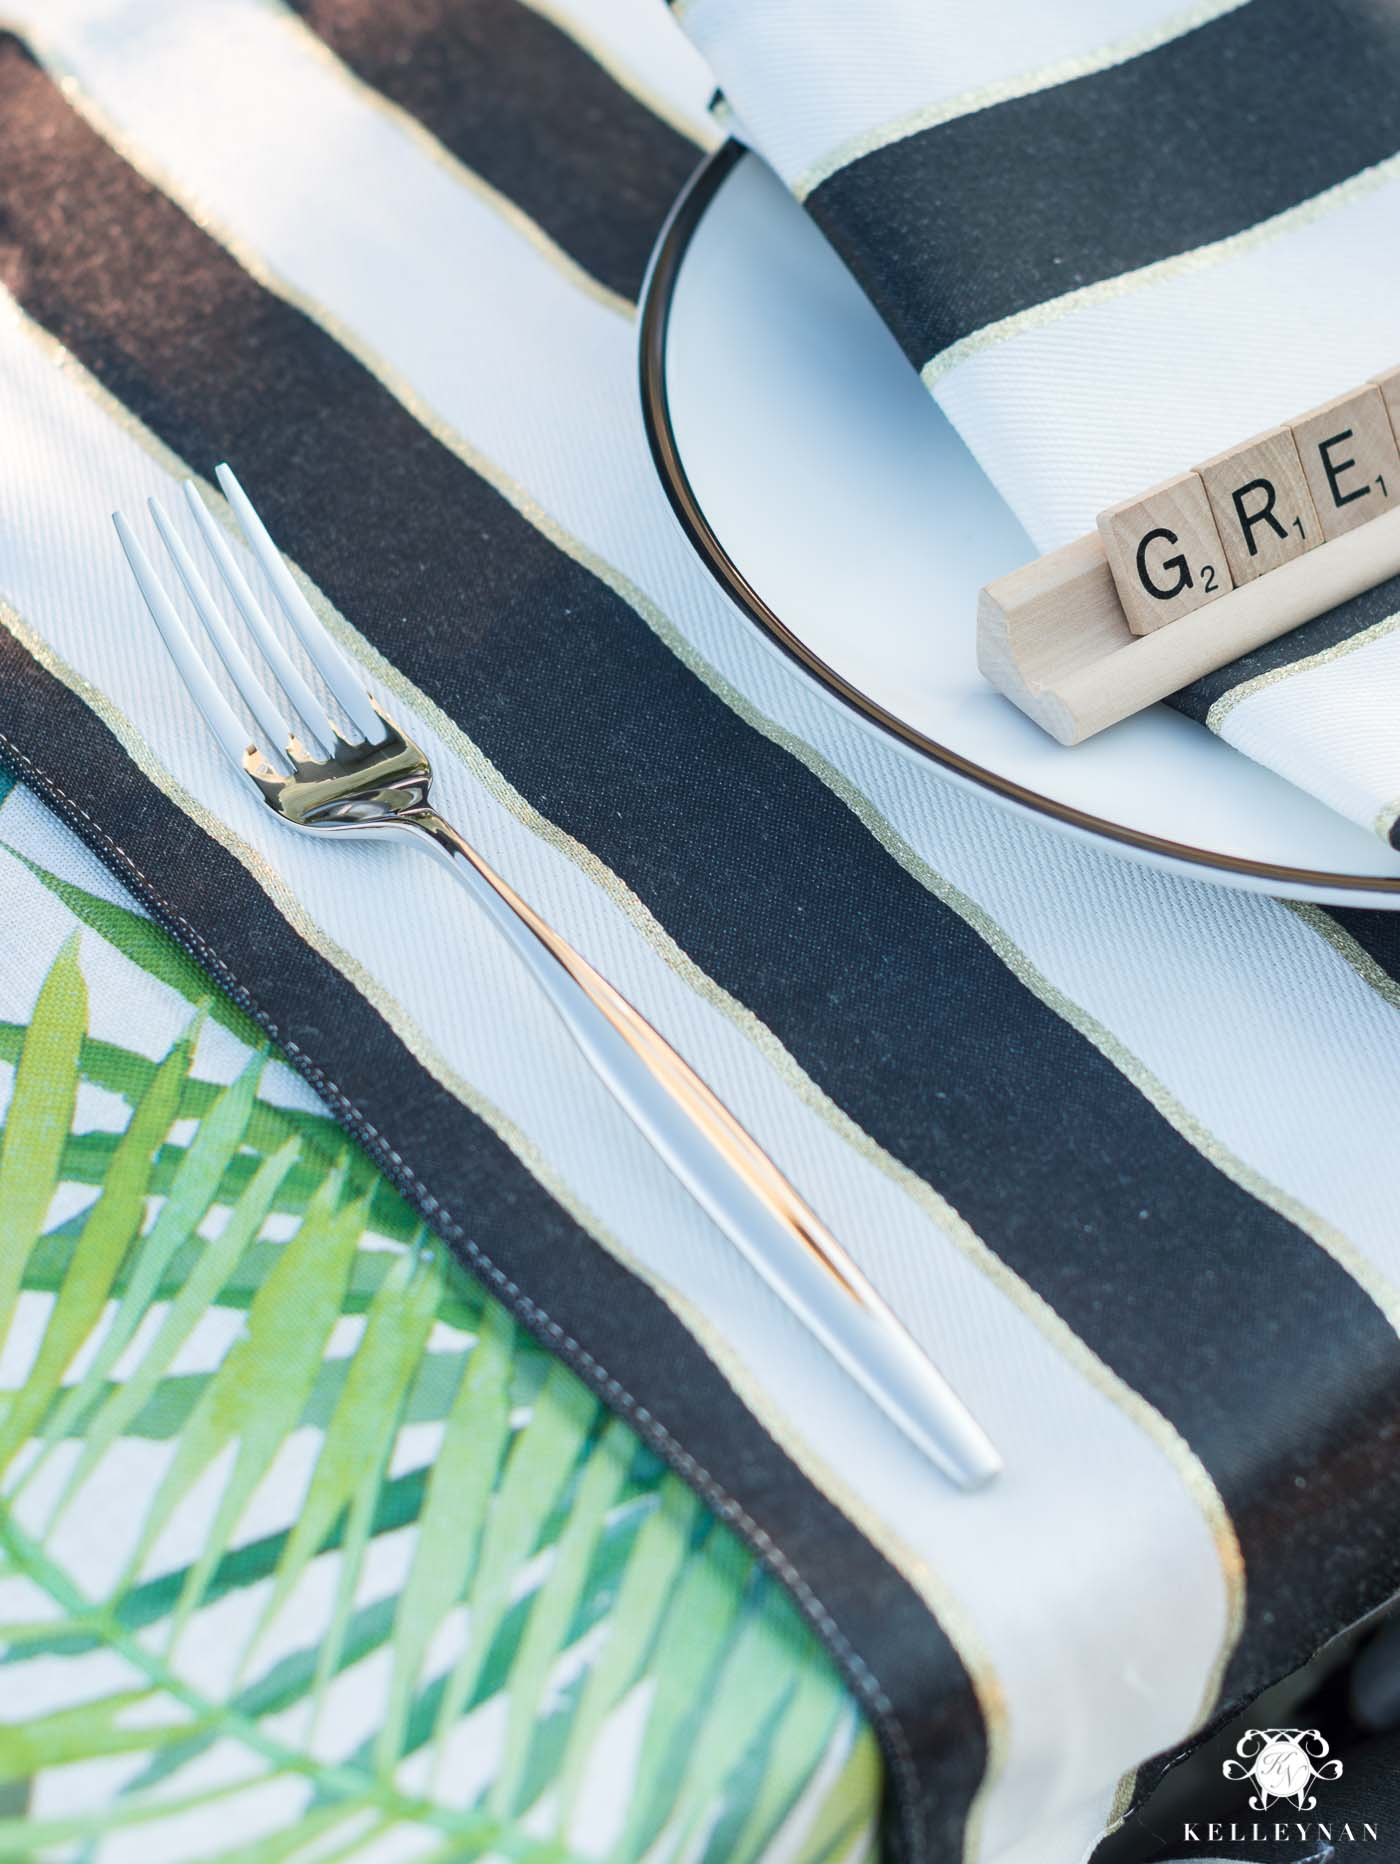 Best silverware and heavy flatware